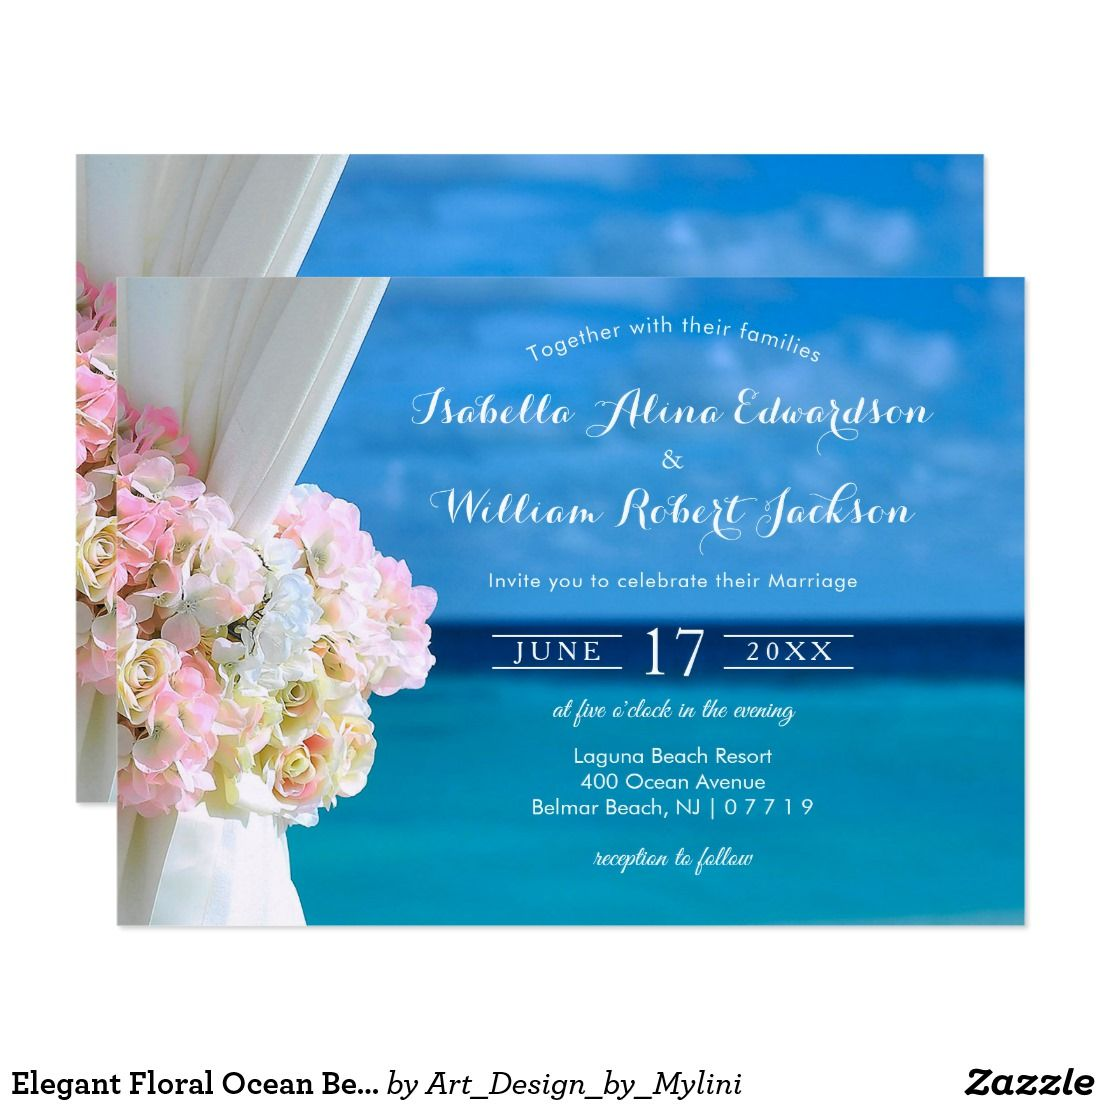 When Do I Send Out Wedding Invitations: Elegant Floral Ocean Beach Wedding Invitation